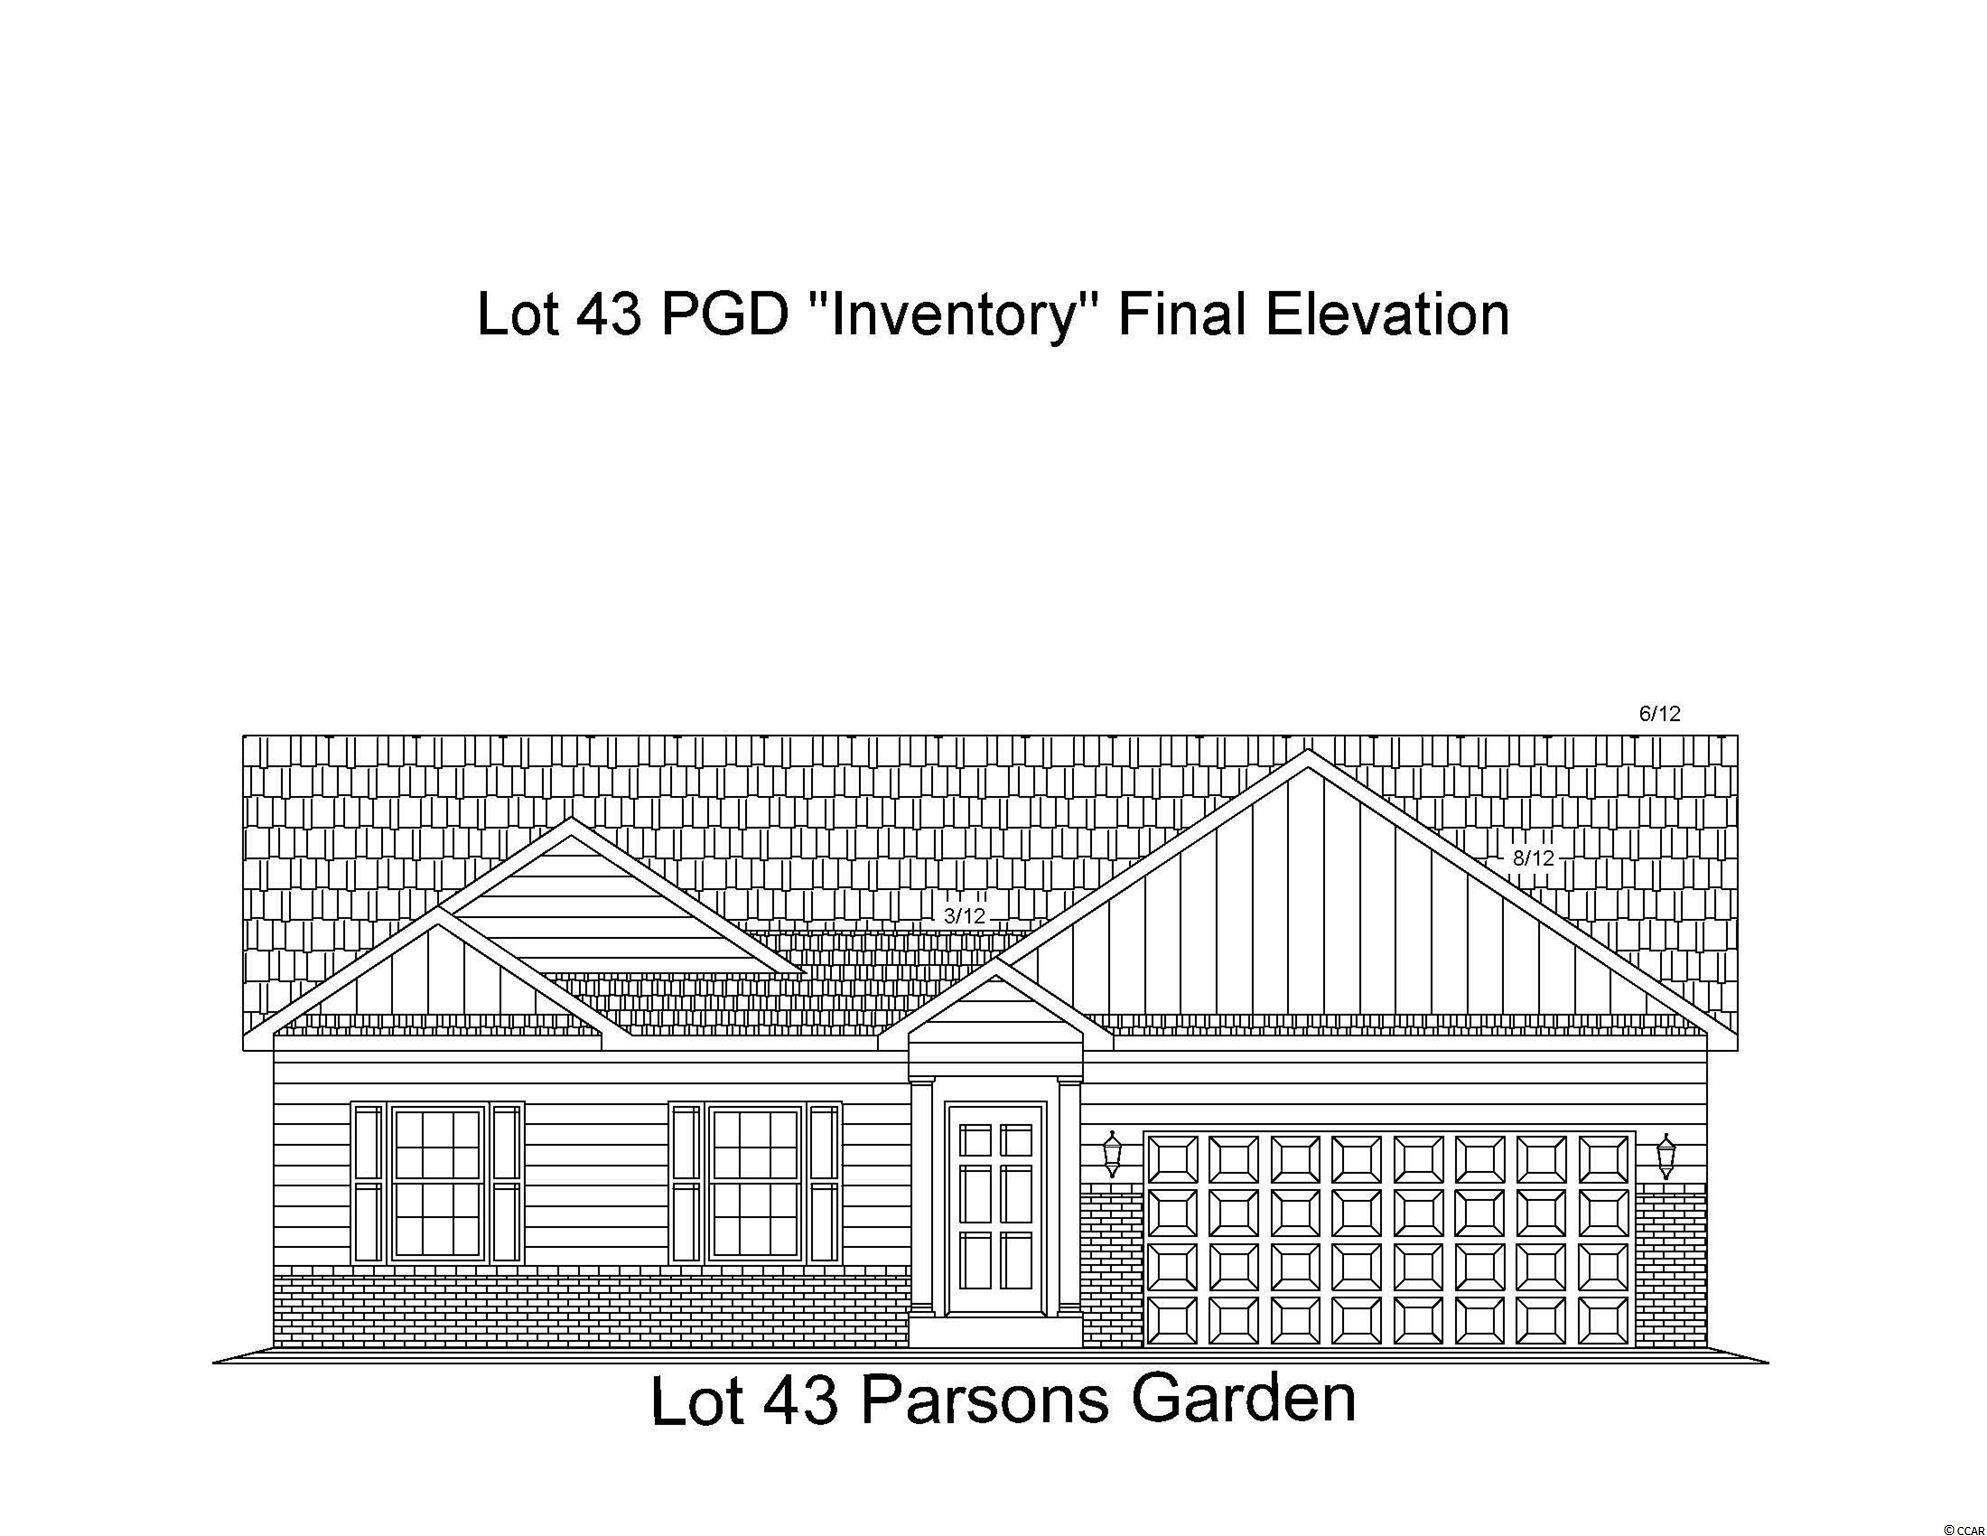 This New Parkside Model has it all! 4 Bedroomw 2 Baths with and a 2 Car Garage. at 1613 Sq Ft.  This Open concept home with a modern design Sits on a spacious lot. The floor plan features lots of windows and 9ft. ceilings With vaults allowing natural light to flow in. The living and dining rooms are adjacent to the kitchen which makes entertaining easy and effortless. This Kitchen includes Granite Countertops, Benton White painted cabinets, and stainless appliances. Come see all the insightful features designed with you and your lifestyle in mind. Pictures are of a similar home and are for illustration purposes only. This is a To Be Built Home. Upgrades and Lot Premium Not Included in the Listing Price.